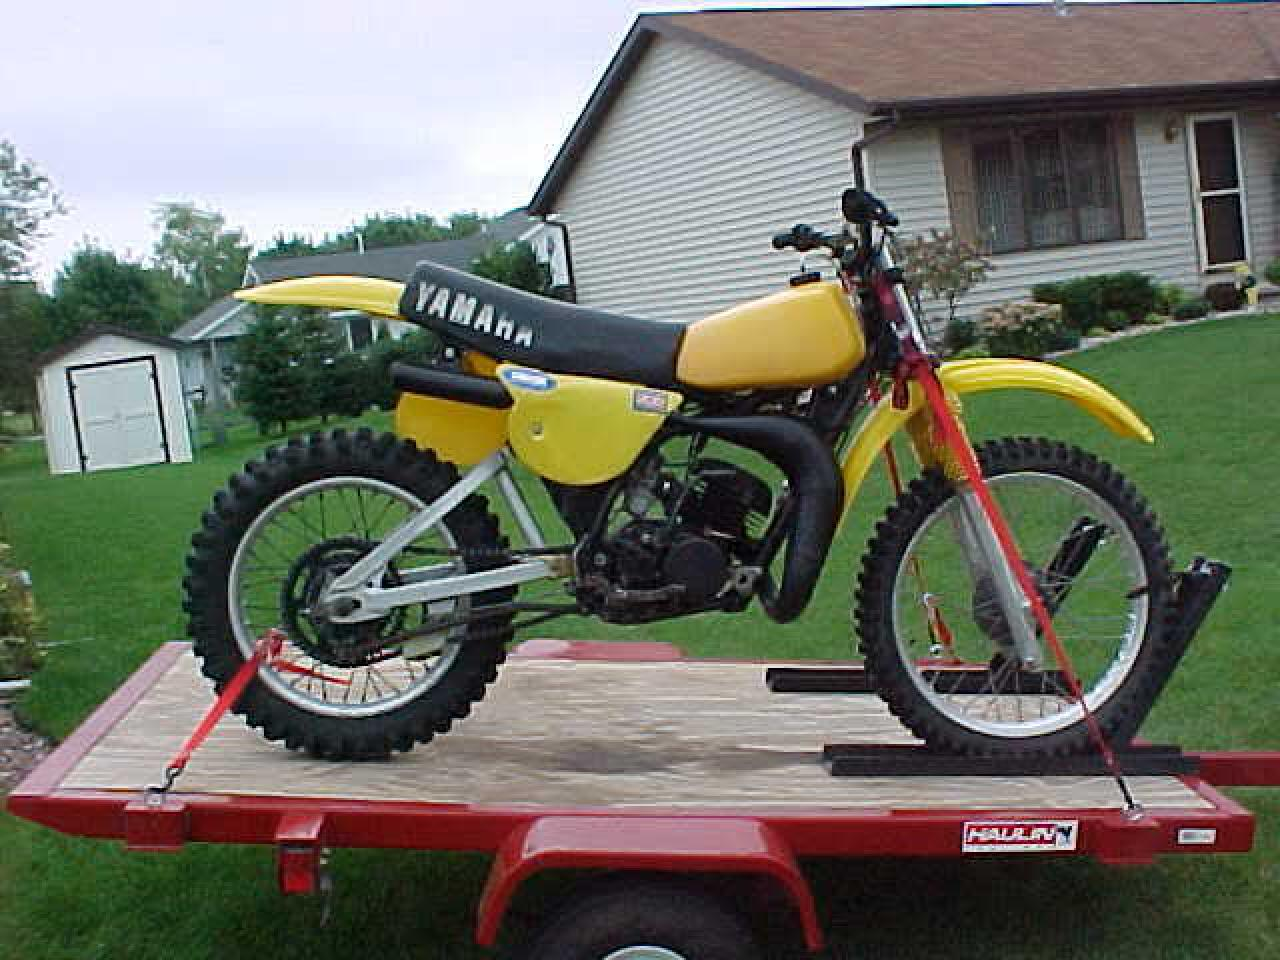 Garelli XR 125 Tiger 1985 images #153975